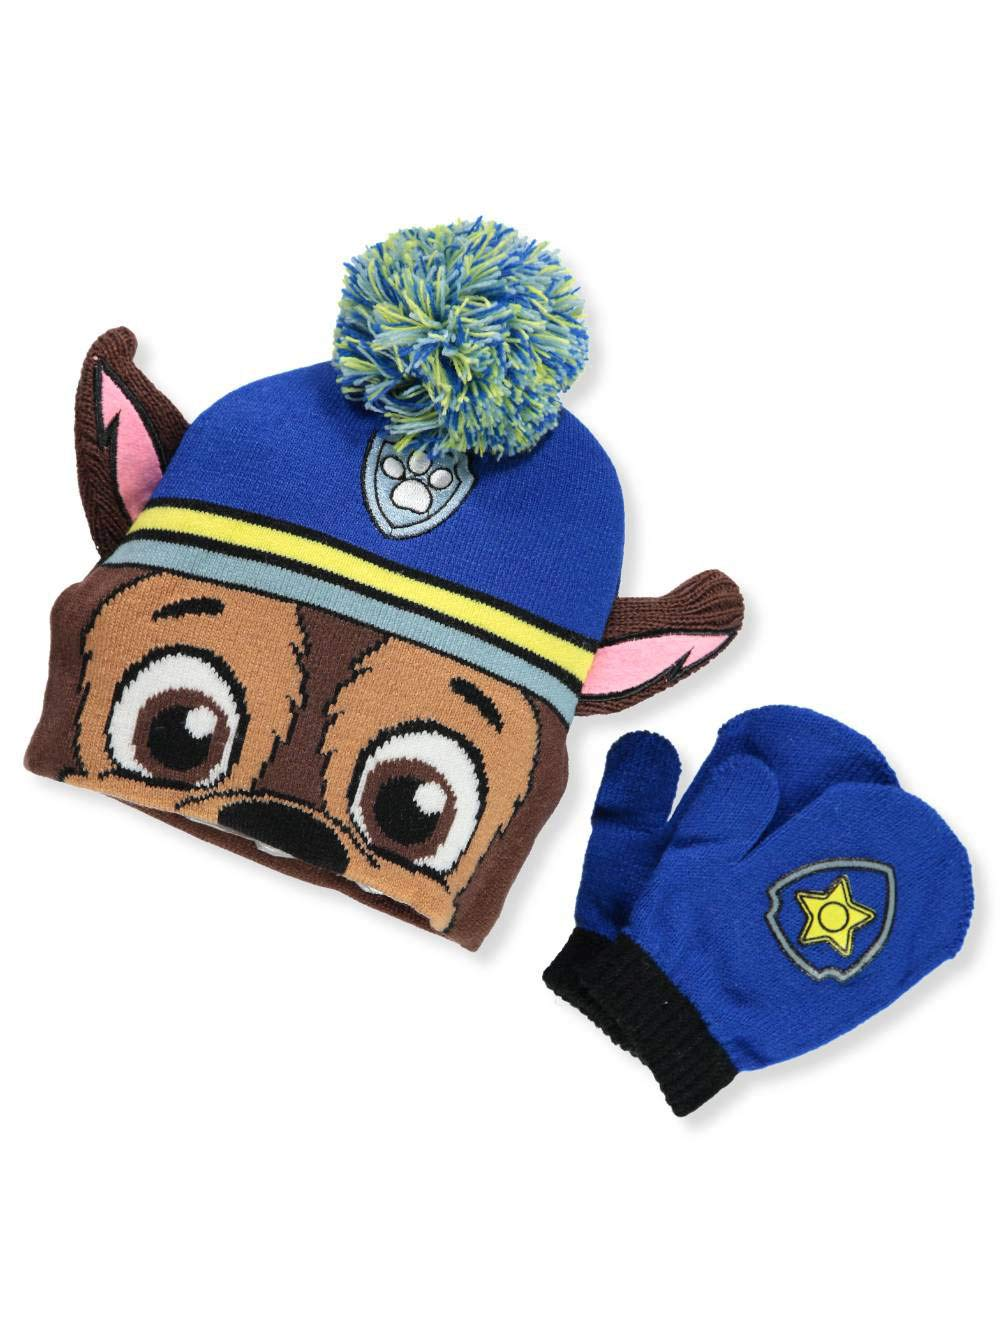 Paw Patrol Big Boys' Beanie & Mittens Set - brown/blue, one size